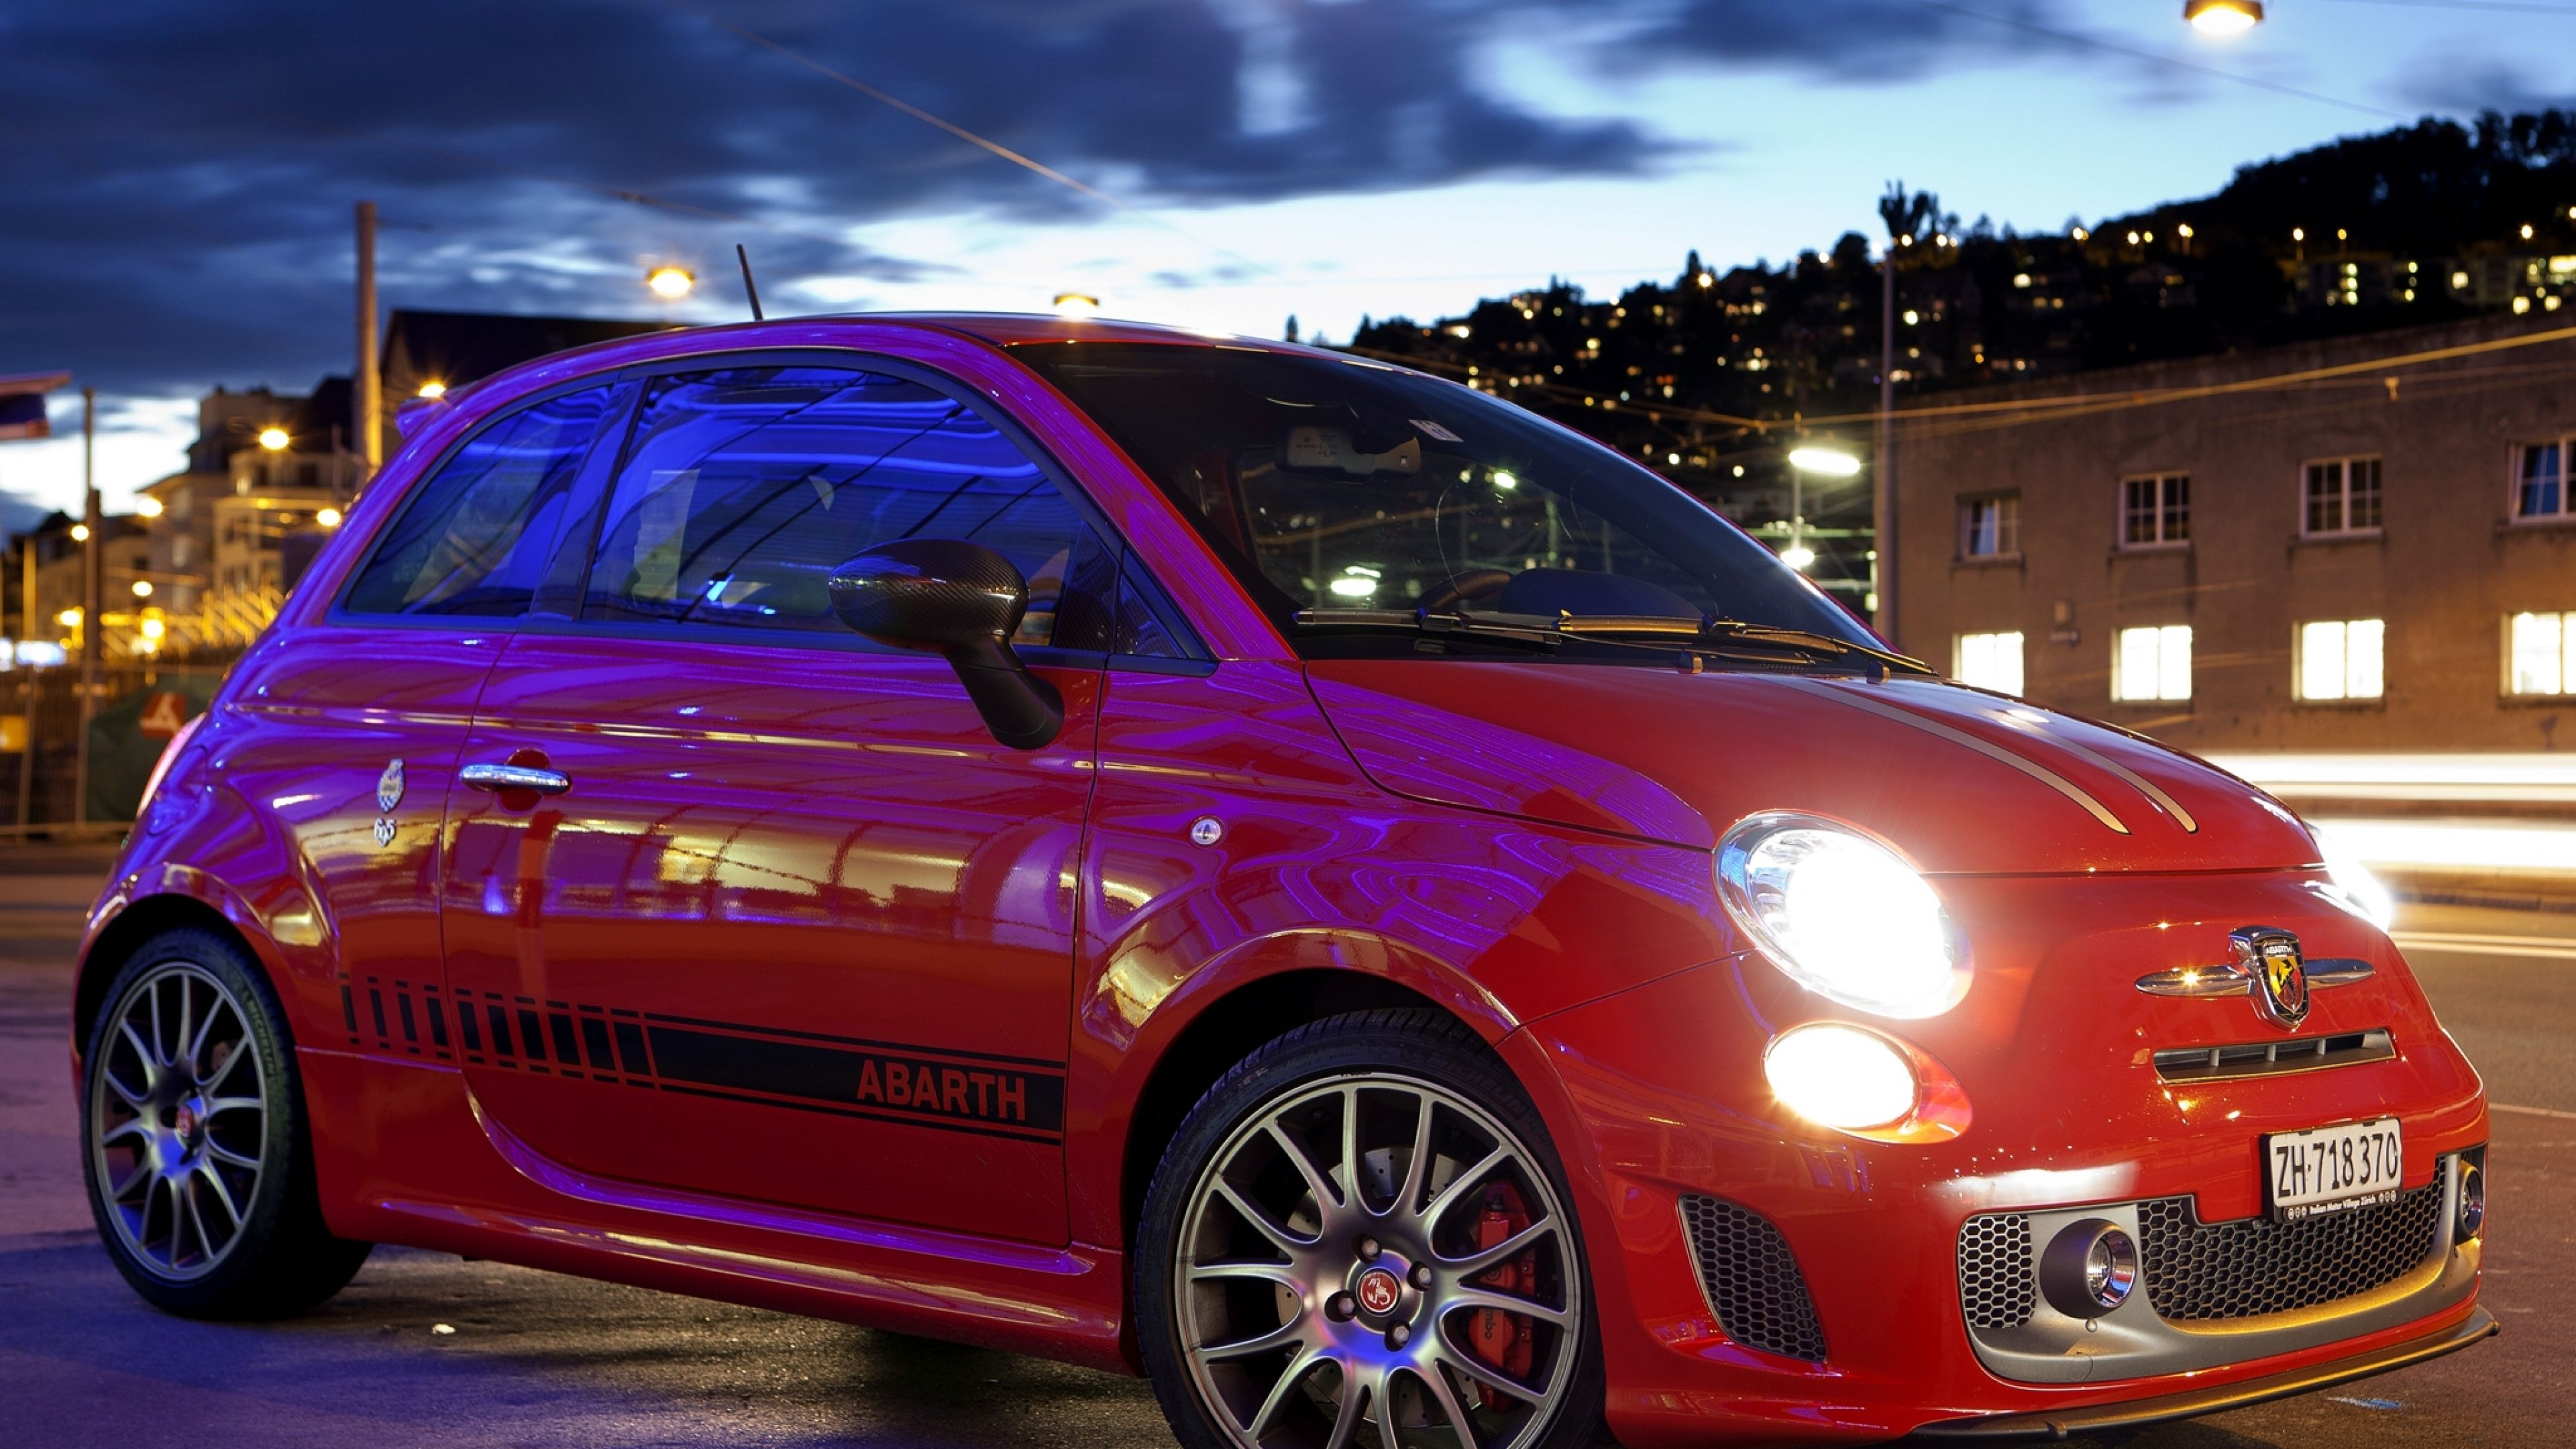 sportivo car driver s tributo road original race reviews fiat ferrari motorsports first for photo club and abarth review drive sale